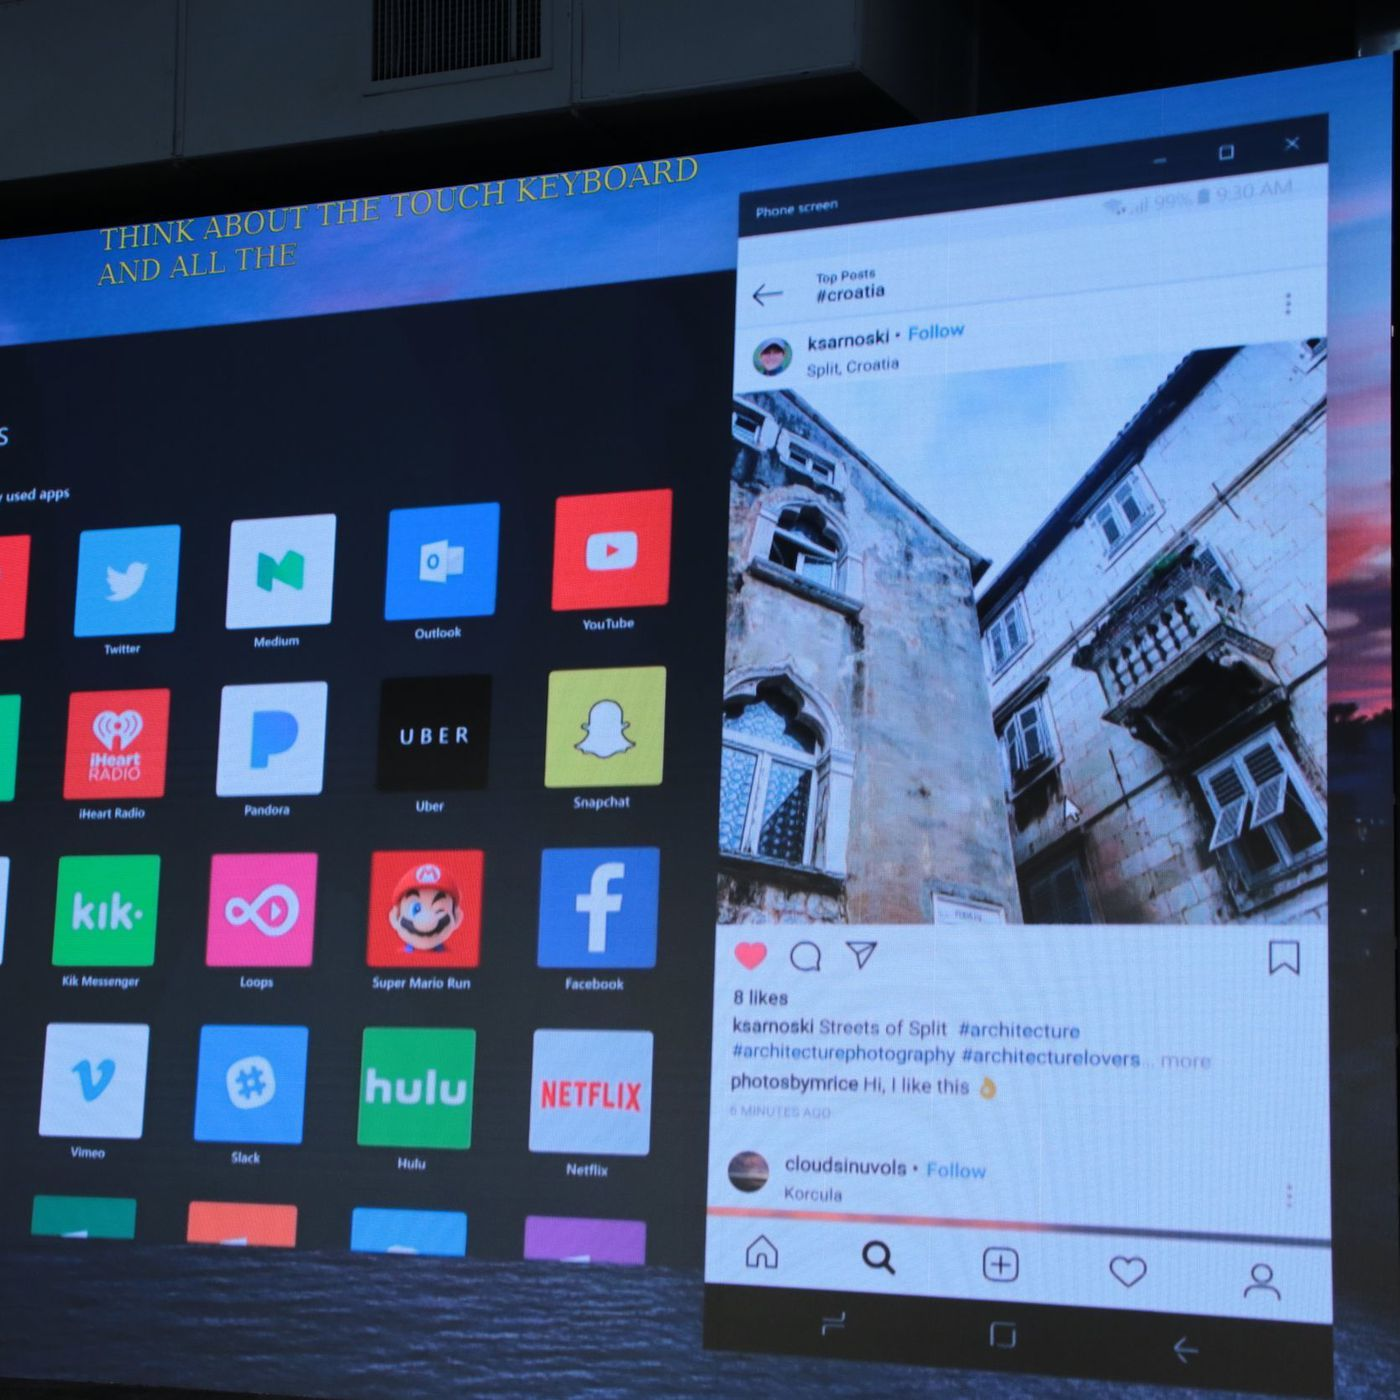 Microsoft is embracing Android as the mobile version of Windows